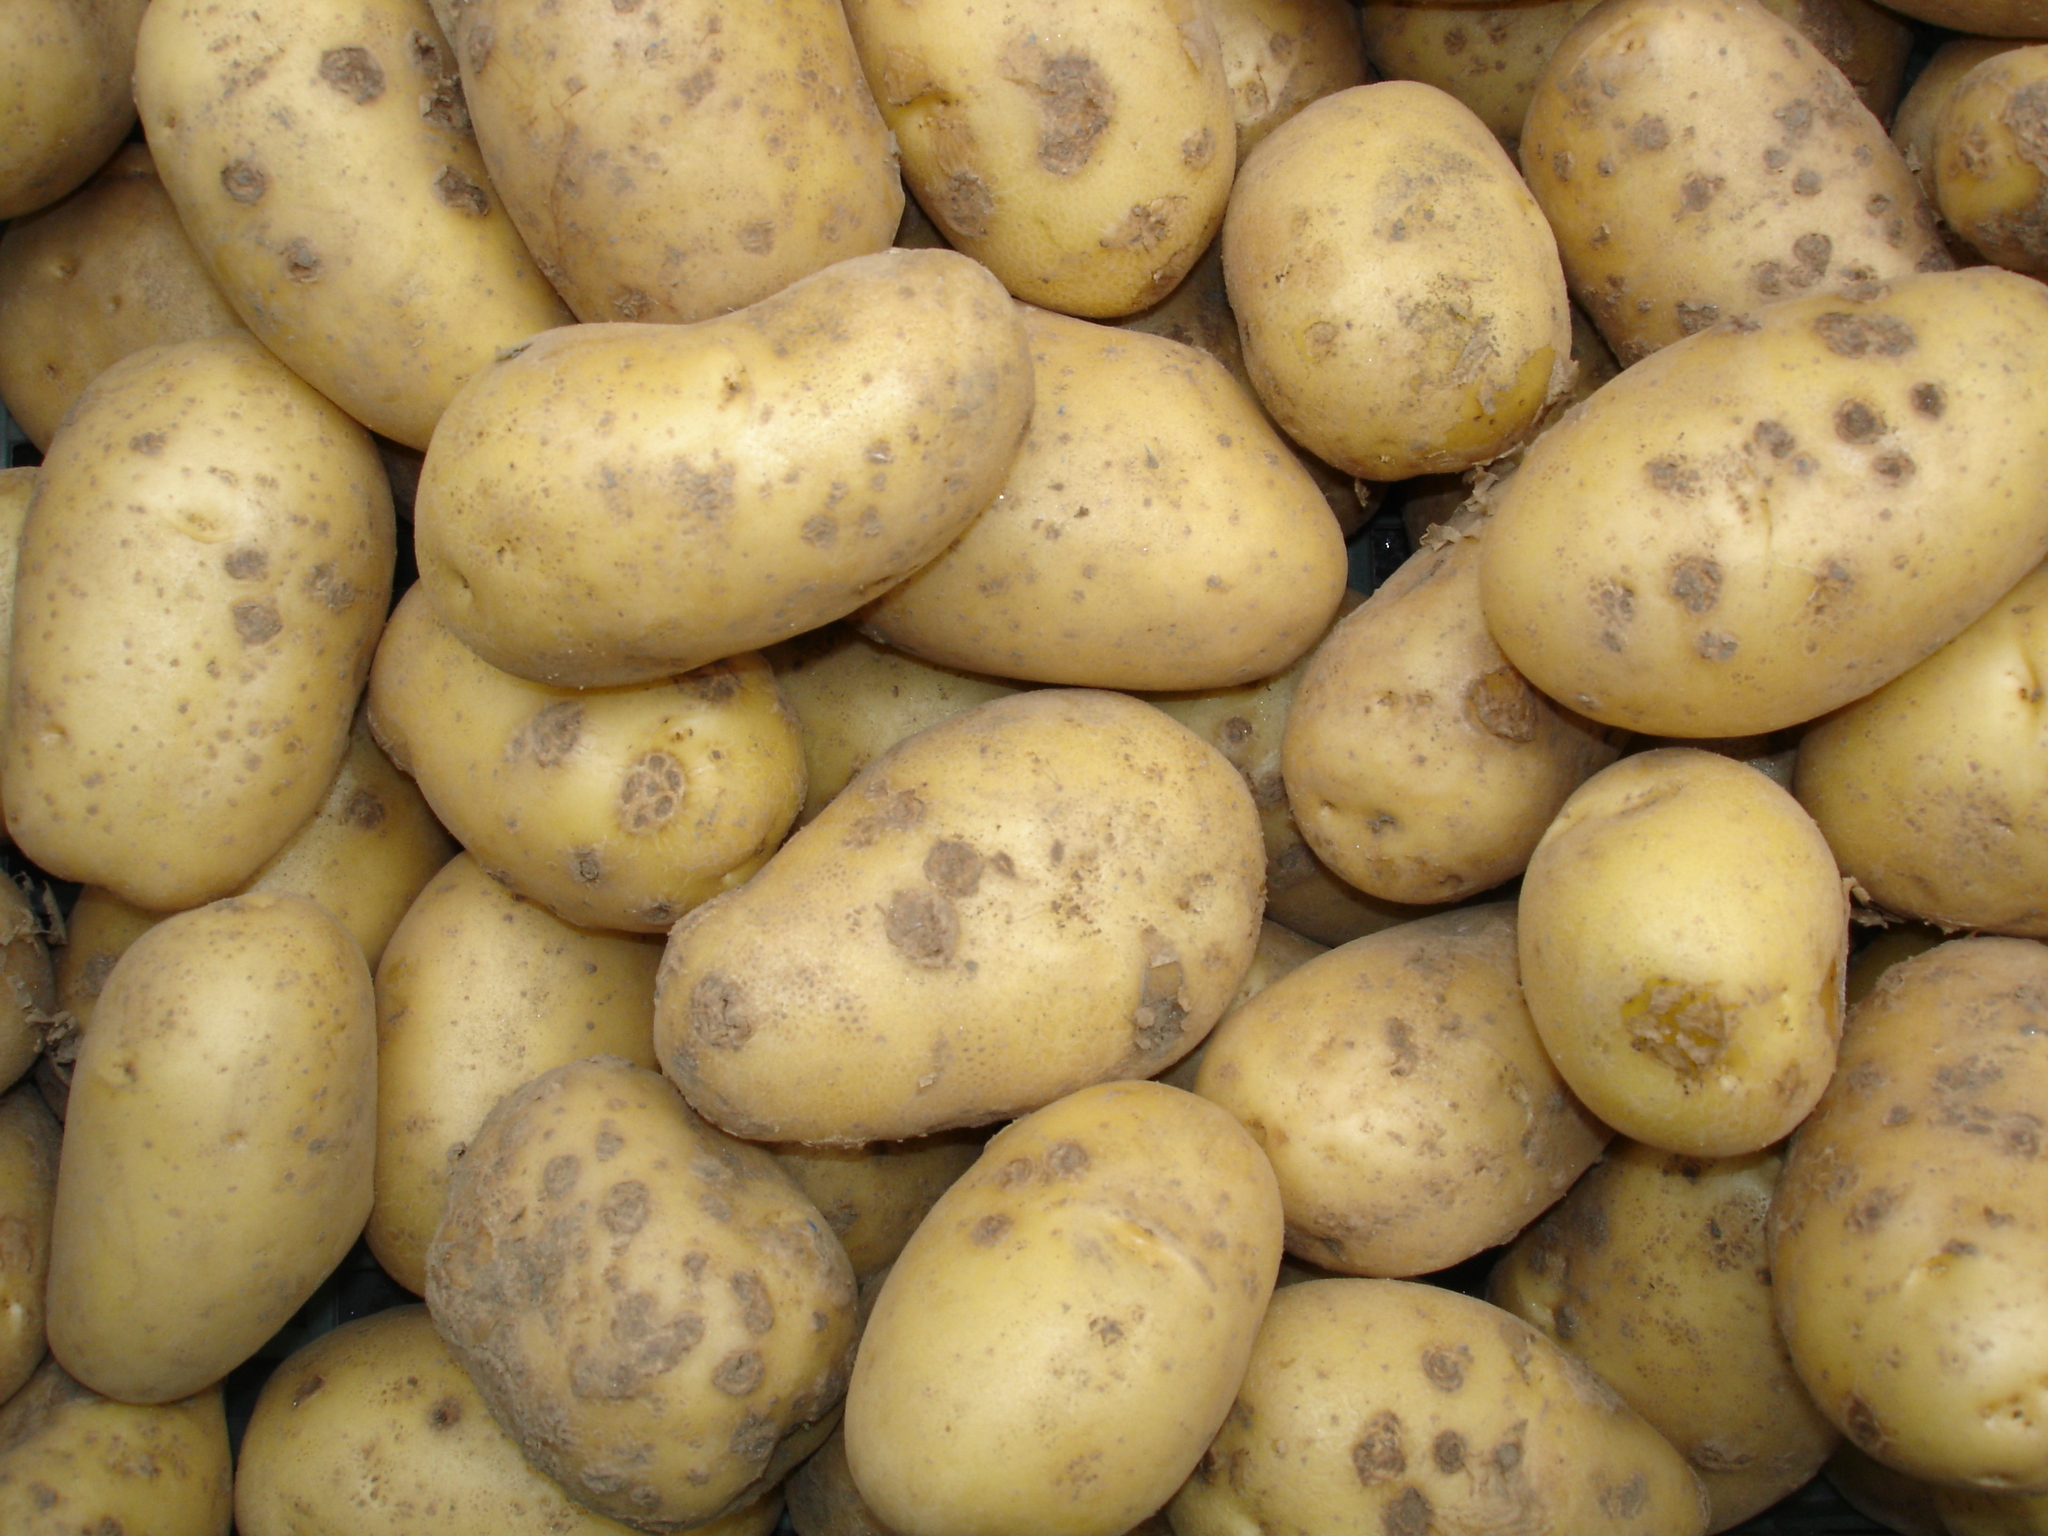 Russet Potatoes arrive in Puerto Vallarta, Mexico